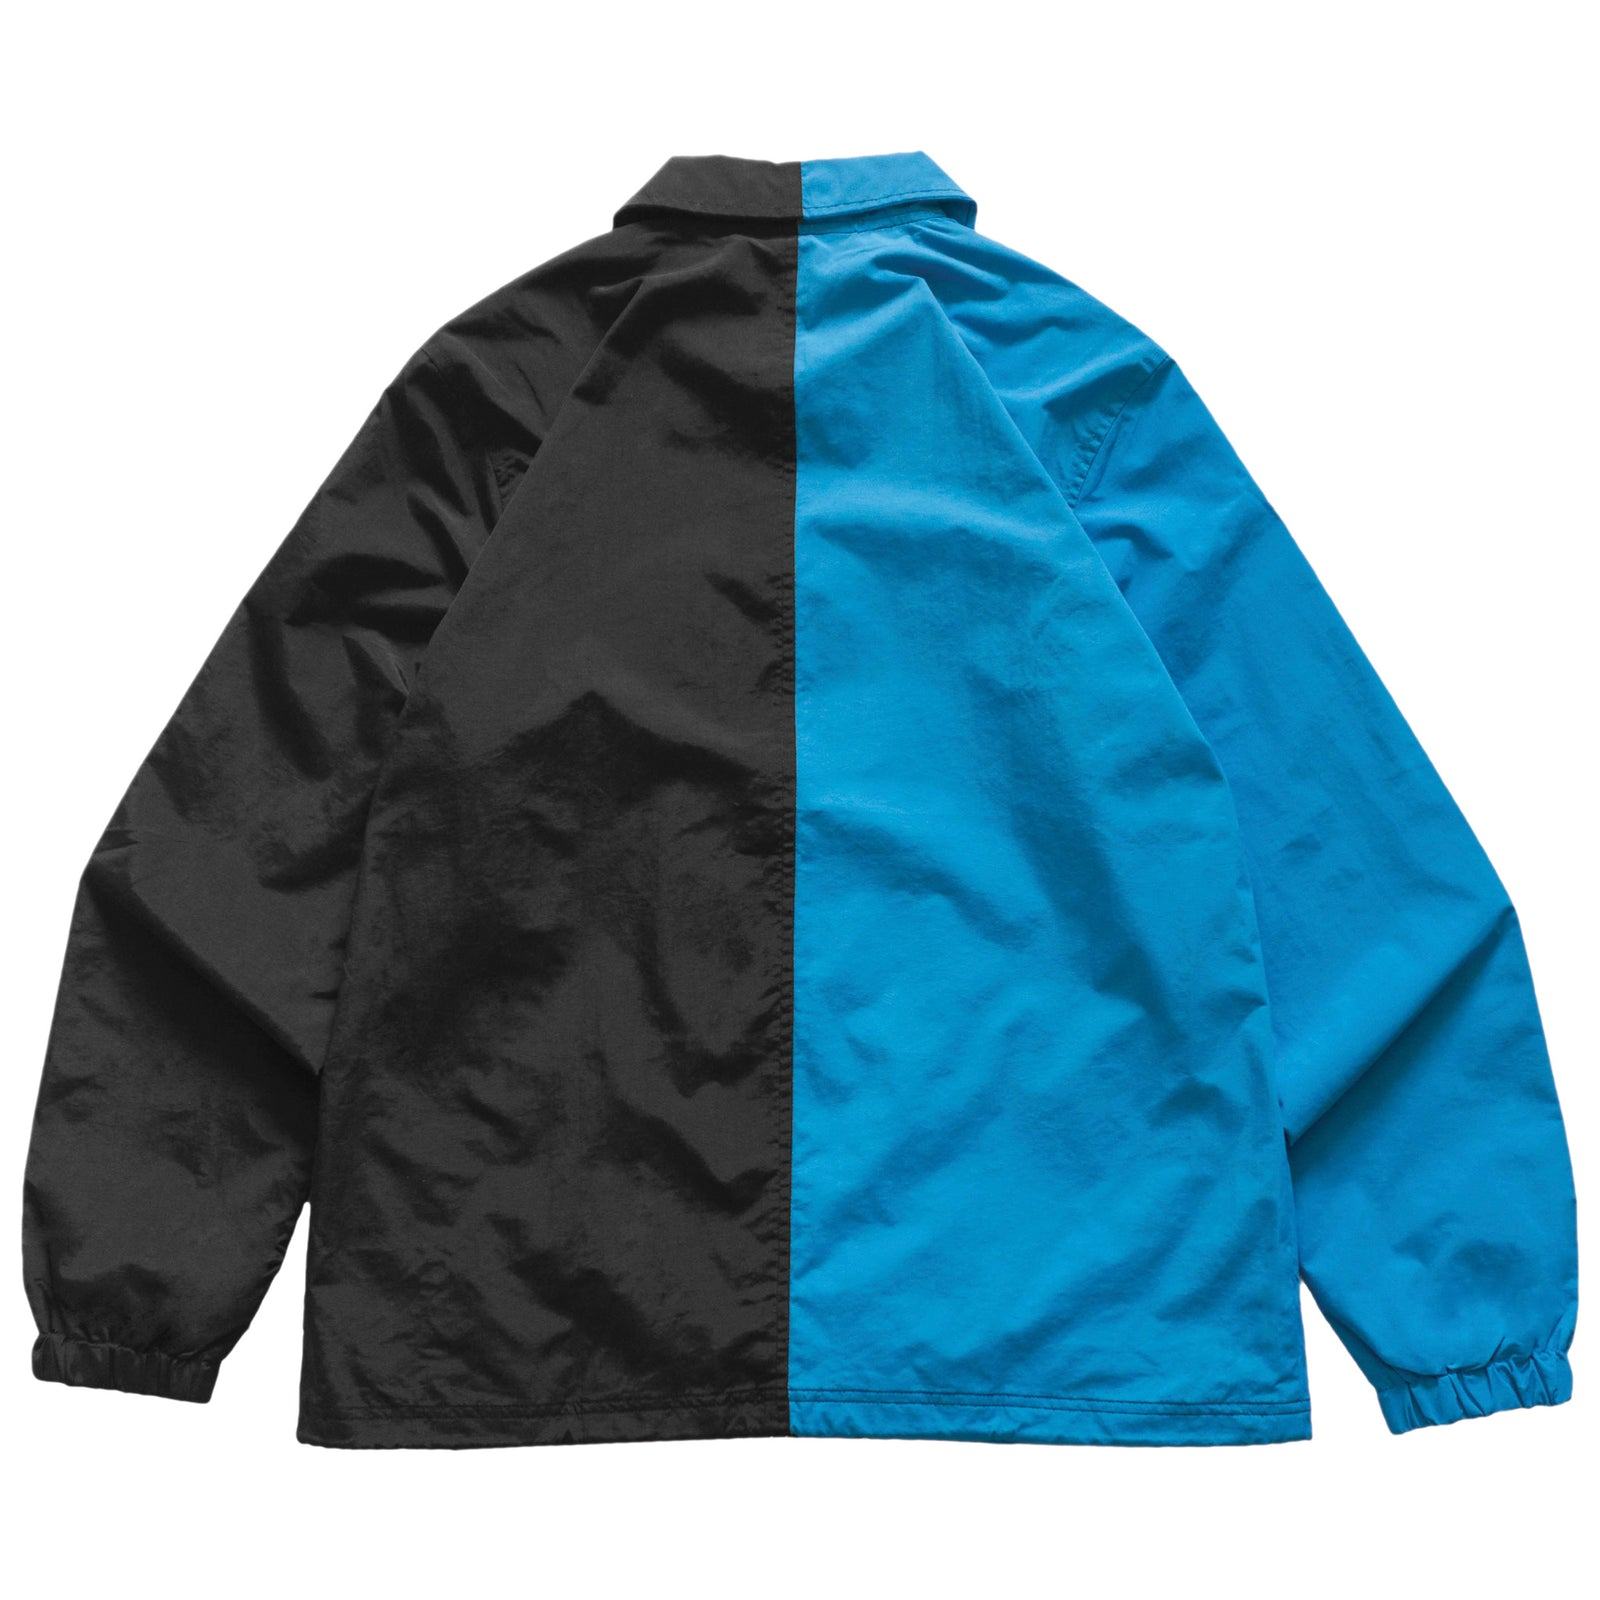 Split Logo Coach Jacket- Aqua/Black